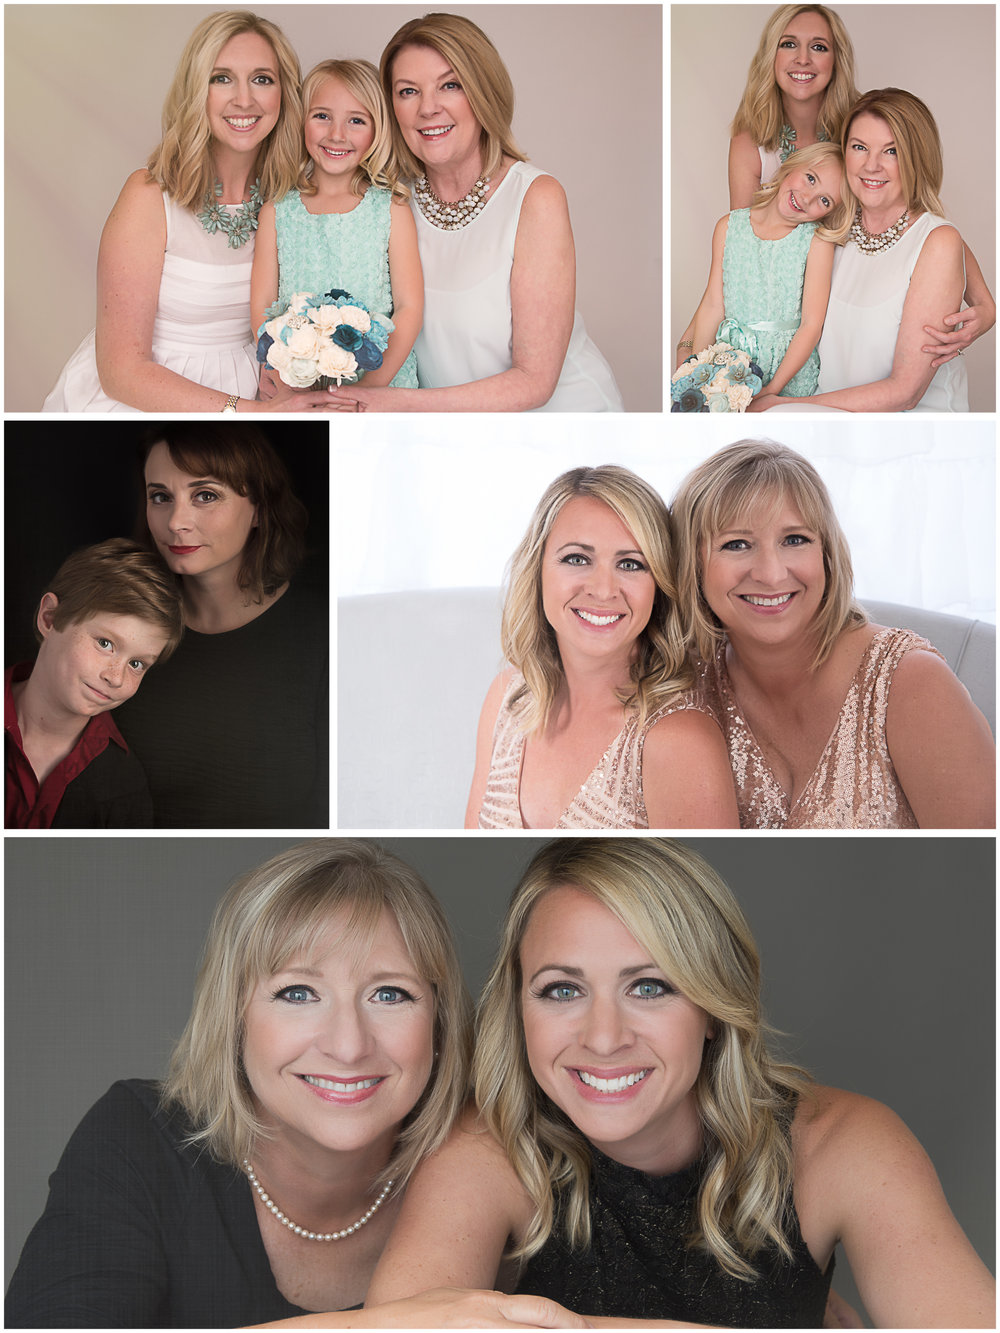 Mothers Day Collage - Amelia Island Photographer.jpg